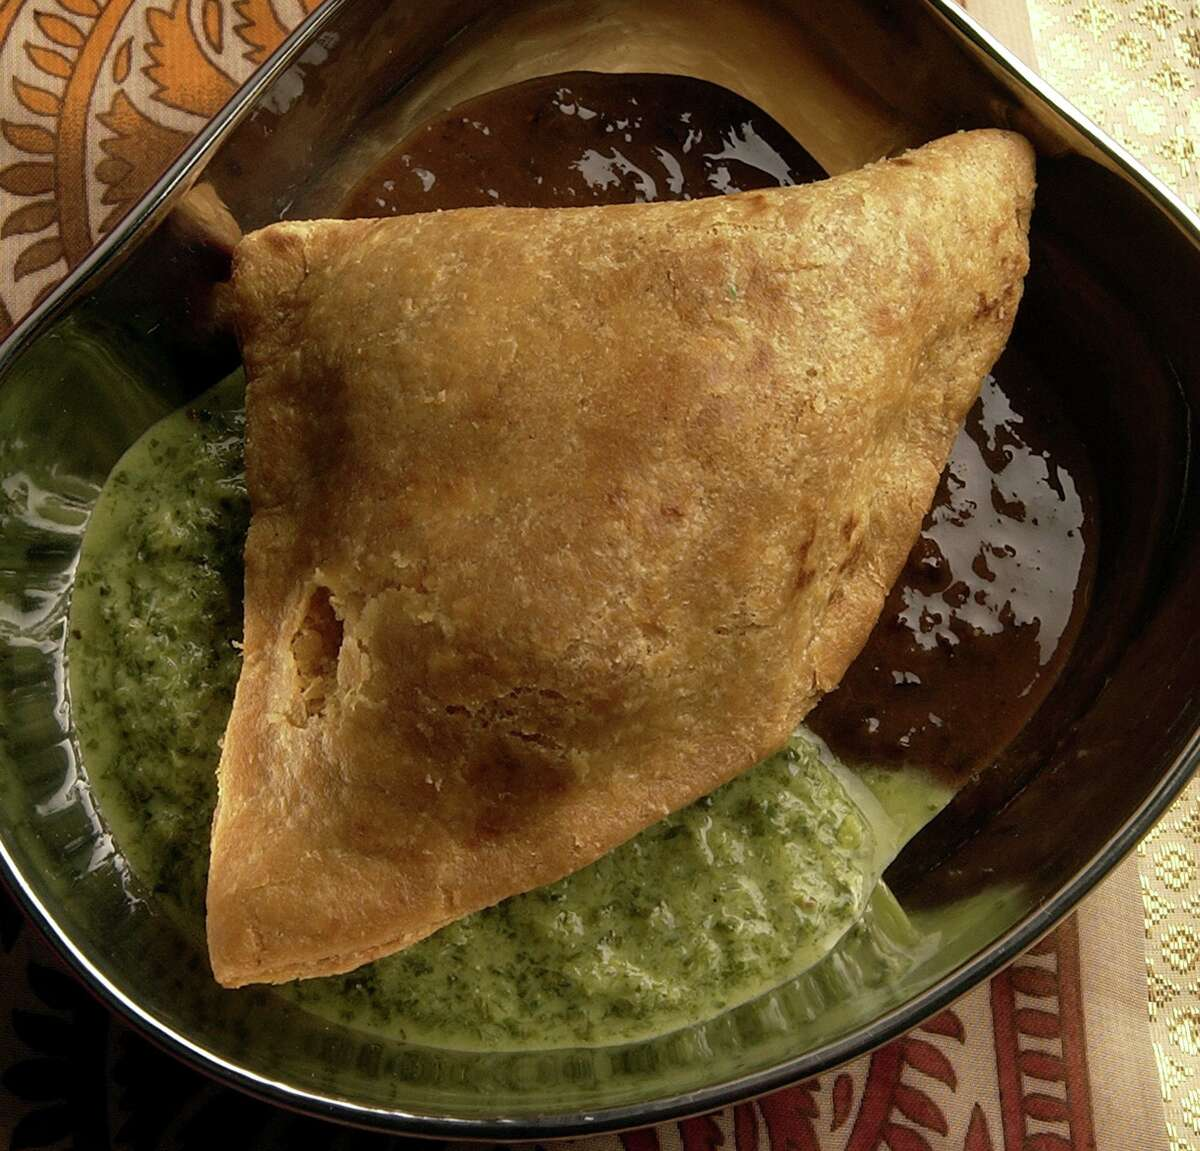 Chaat, or Indian snack foods, are typically served with cilantro-mint and tamarind chutneys.